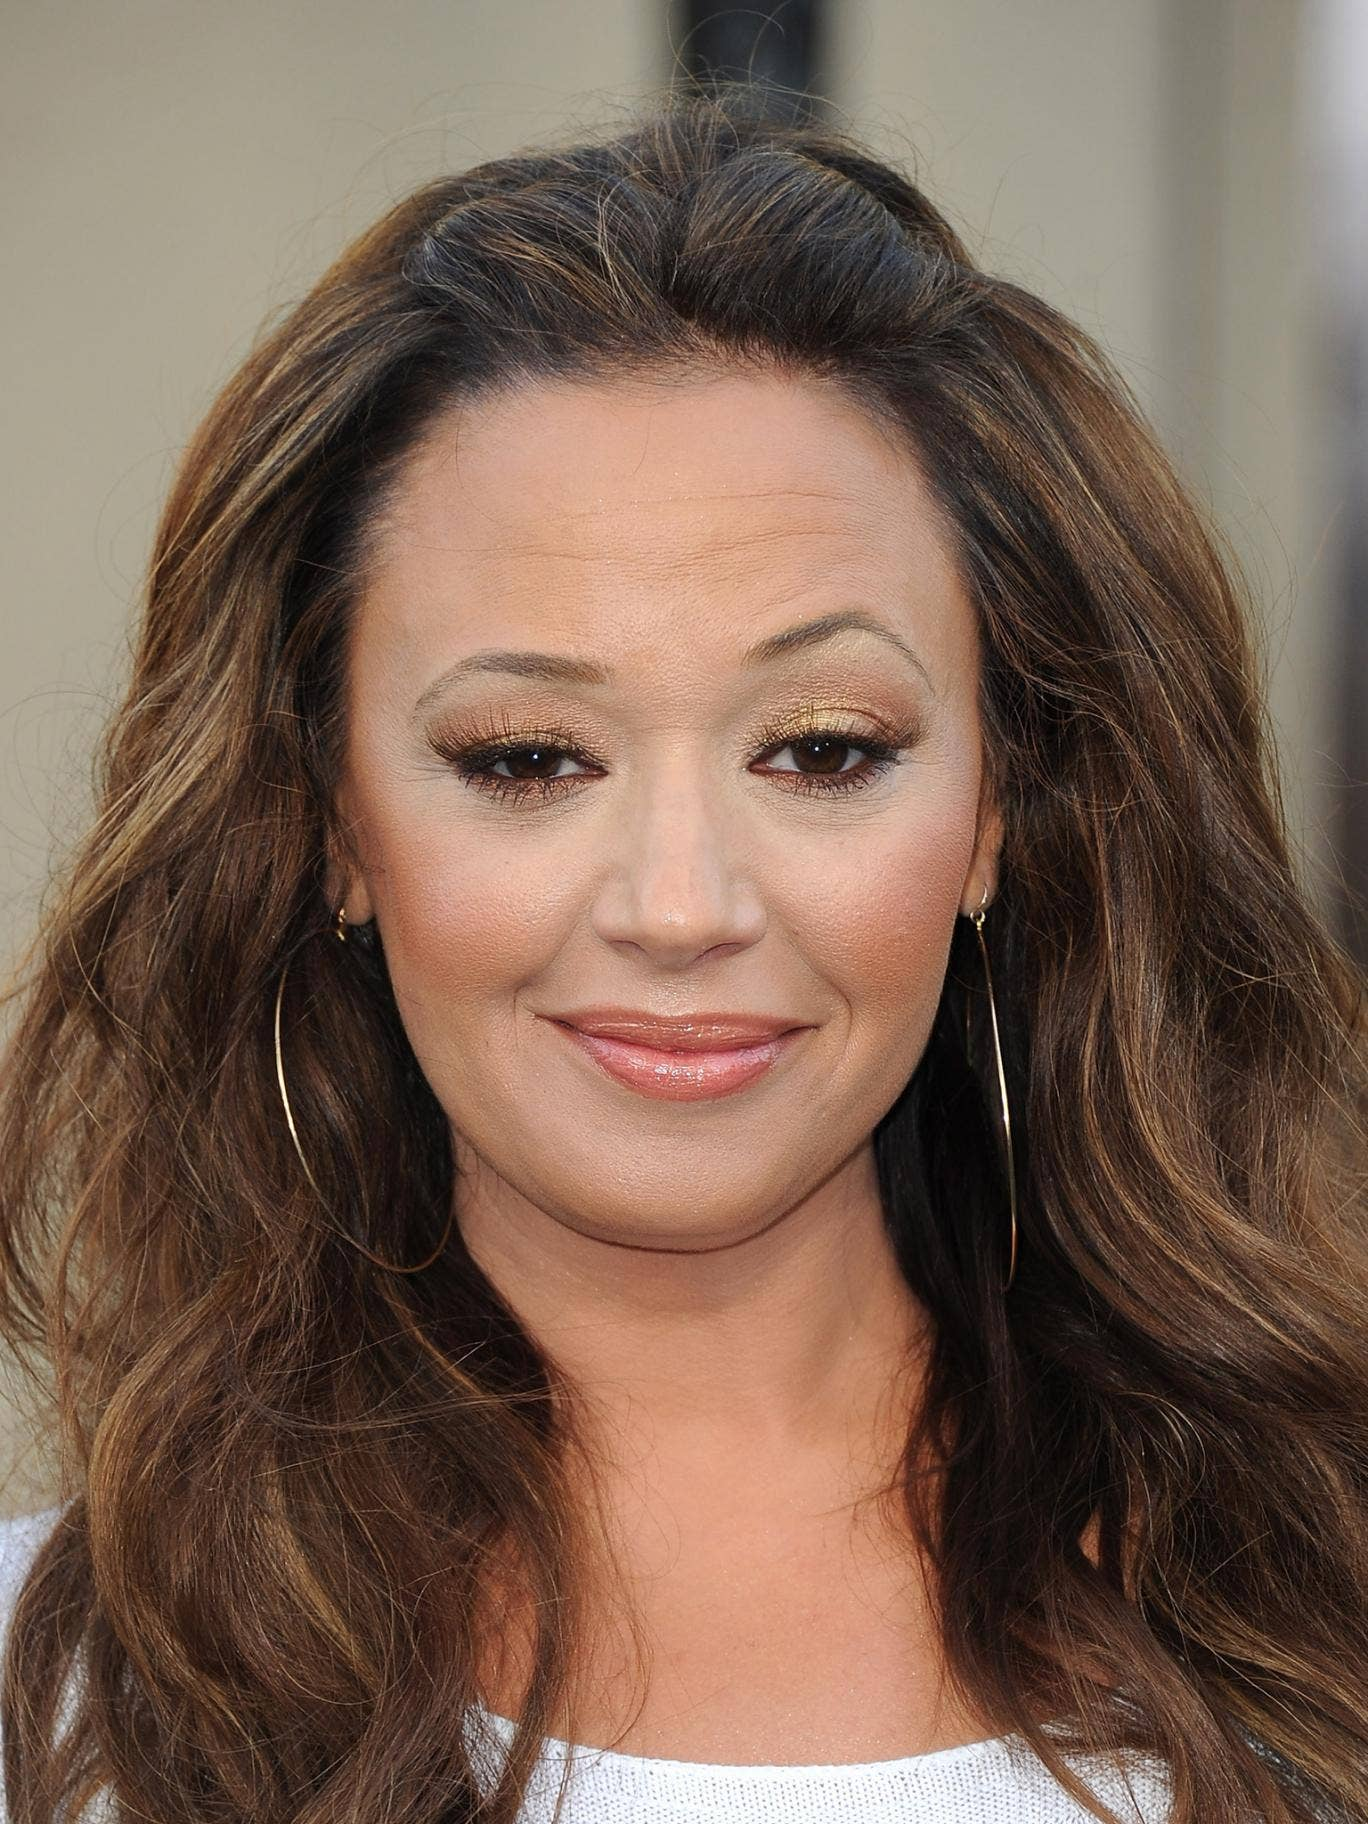 King of queens actress leah remini has left the church of scientology